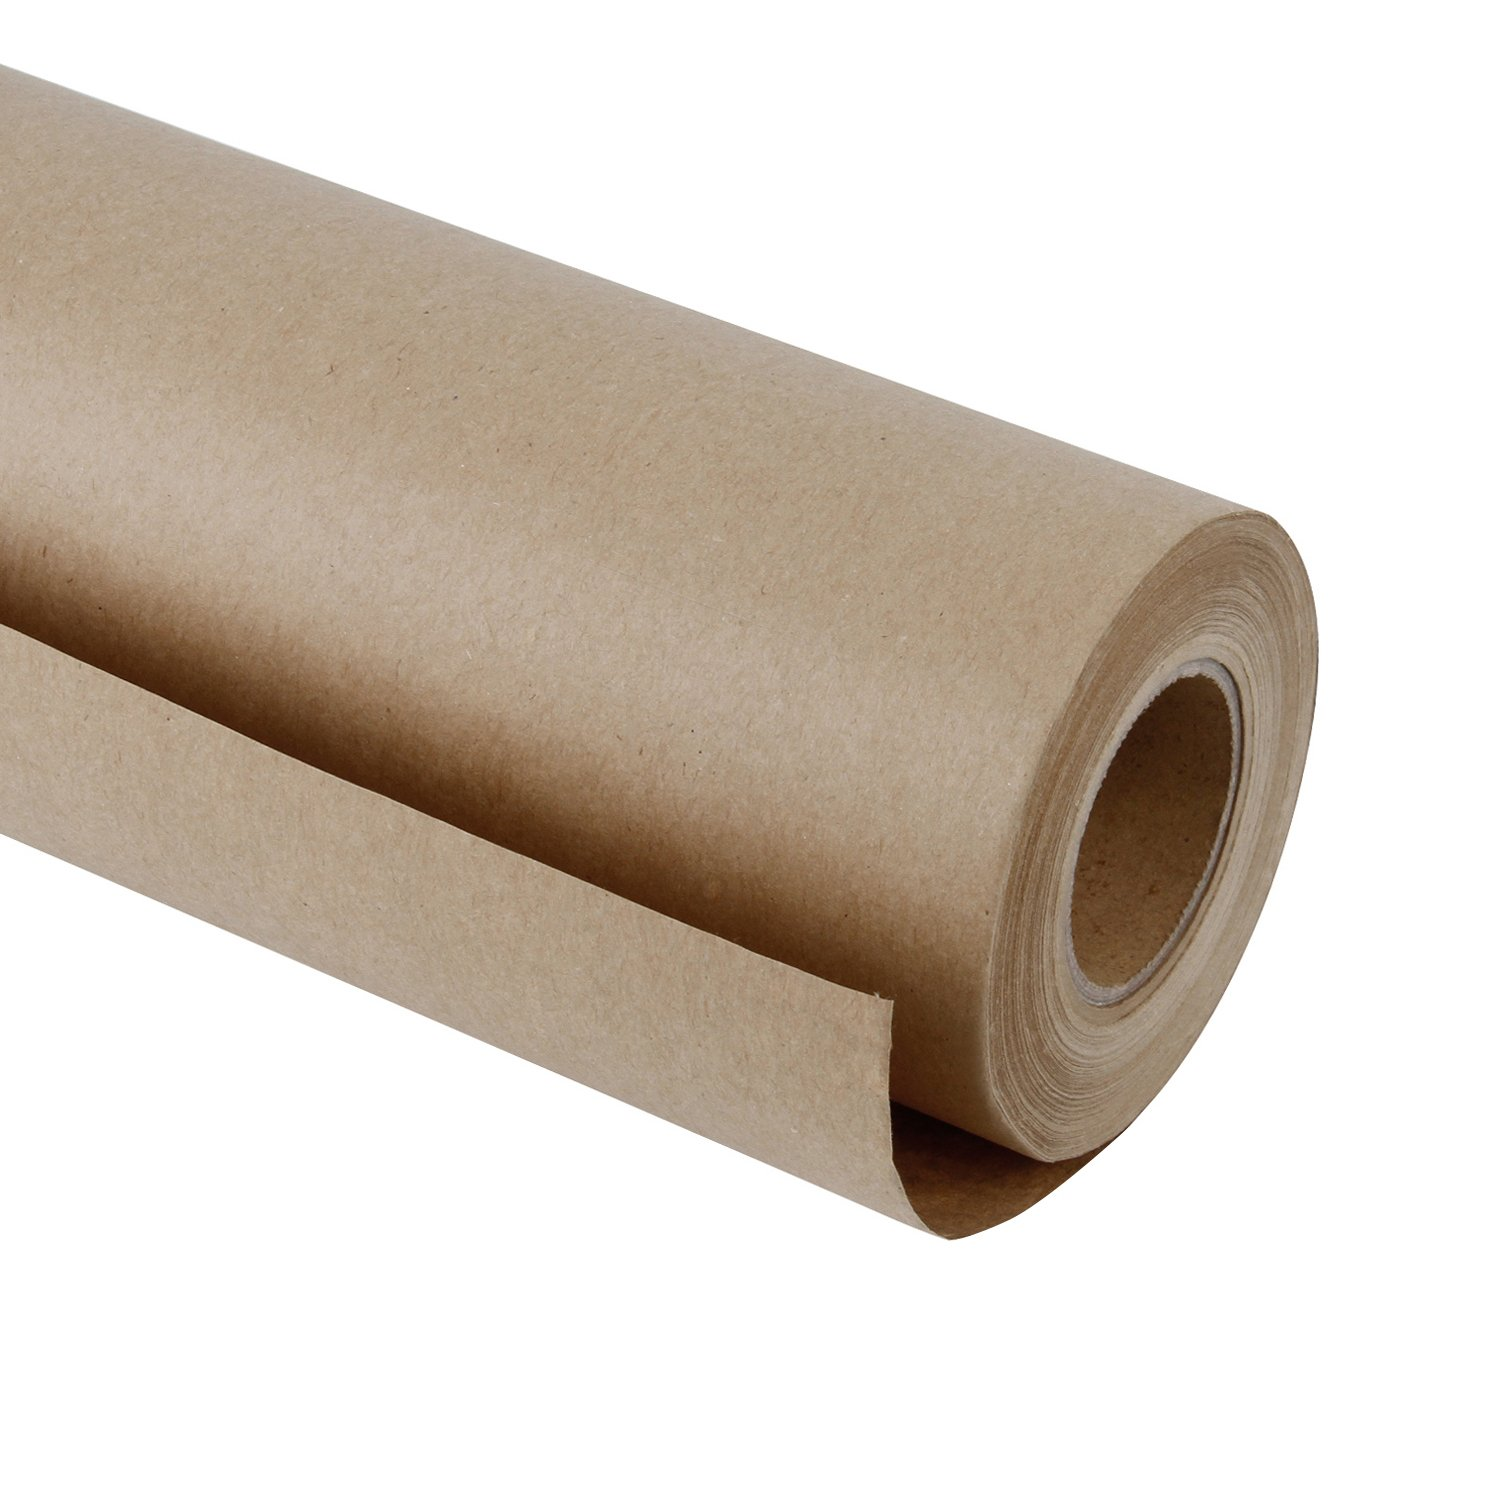 RUSPEPA Brown Kraft Paper Roll - 12 inch x 100 Feet - Natural Recycled Paper Perfect Crafts, Art, Gift Wrapping, Packing, Postal, Shipping, Dunnage & Parcel